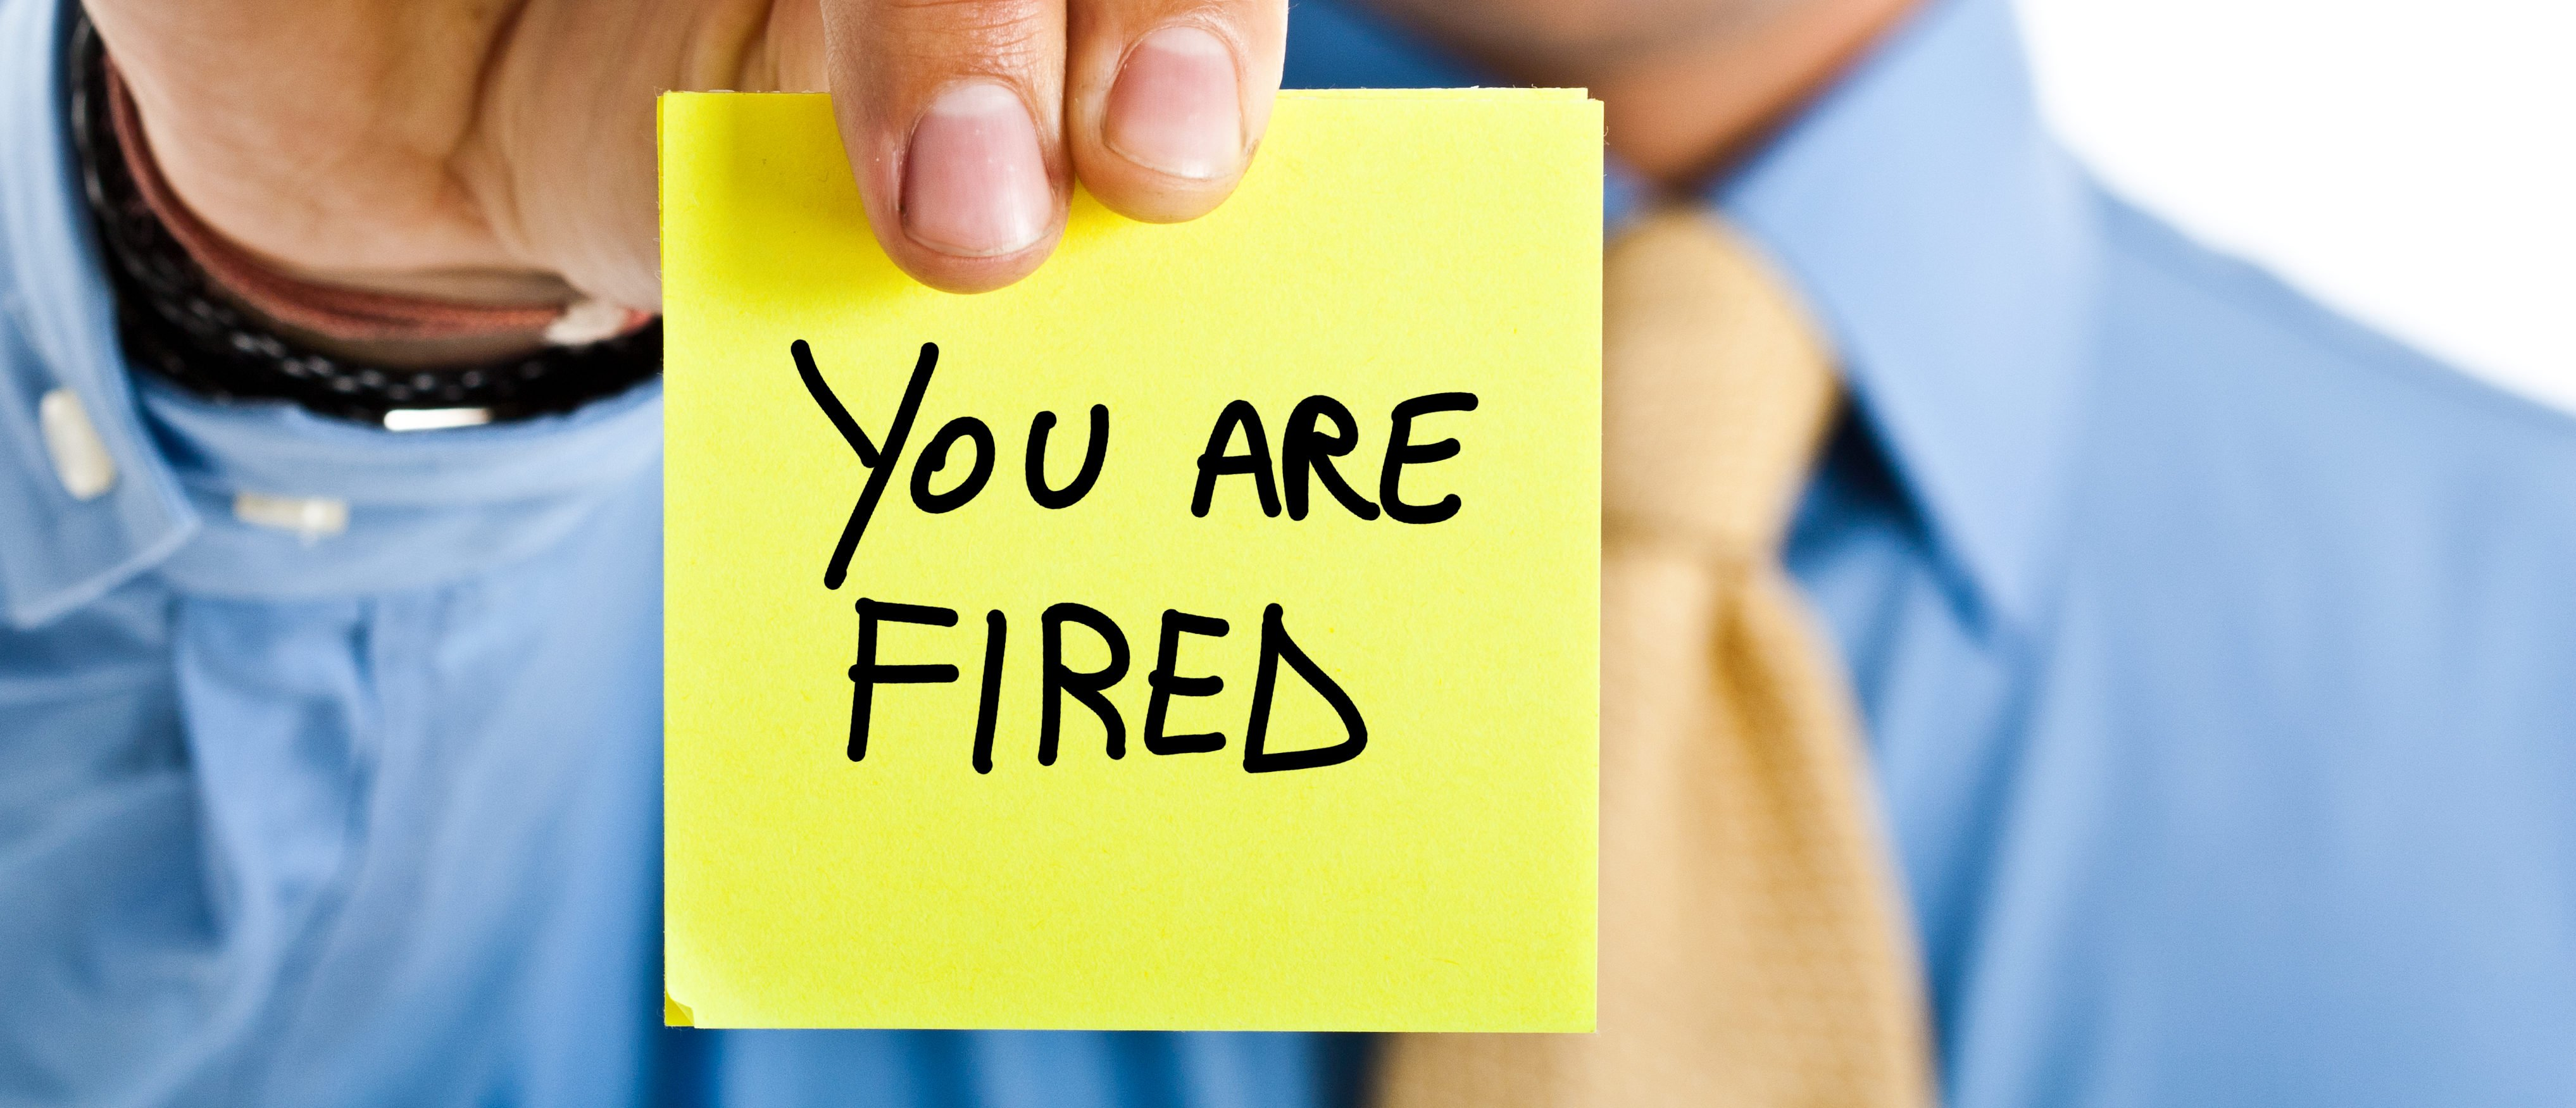 You Are Fired Sticky (Shutterstock/Minerva Studio) | Court Rules In Favor Fired Trans Worker